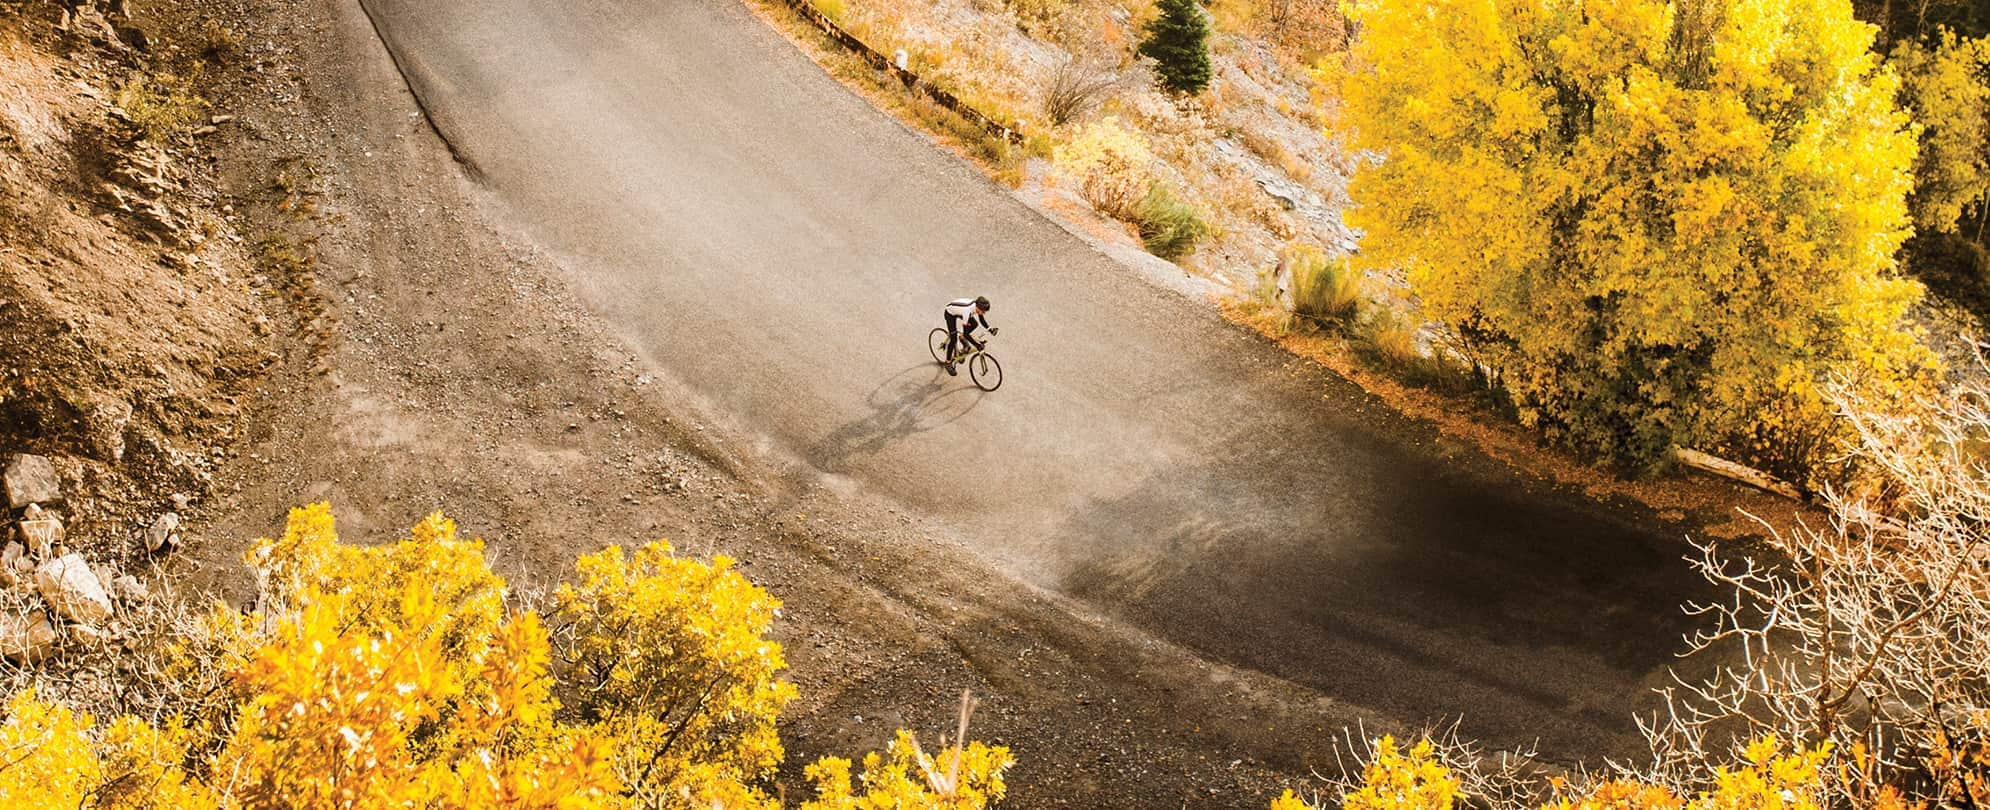 Biker riding down a paved path with lush fall trees